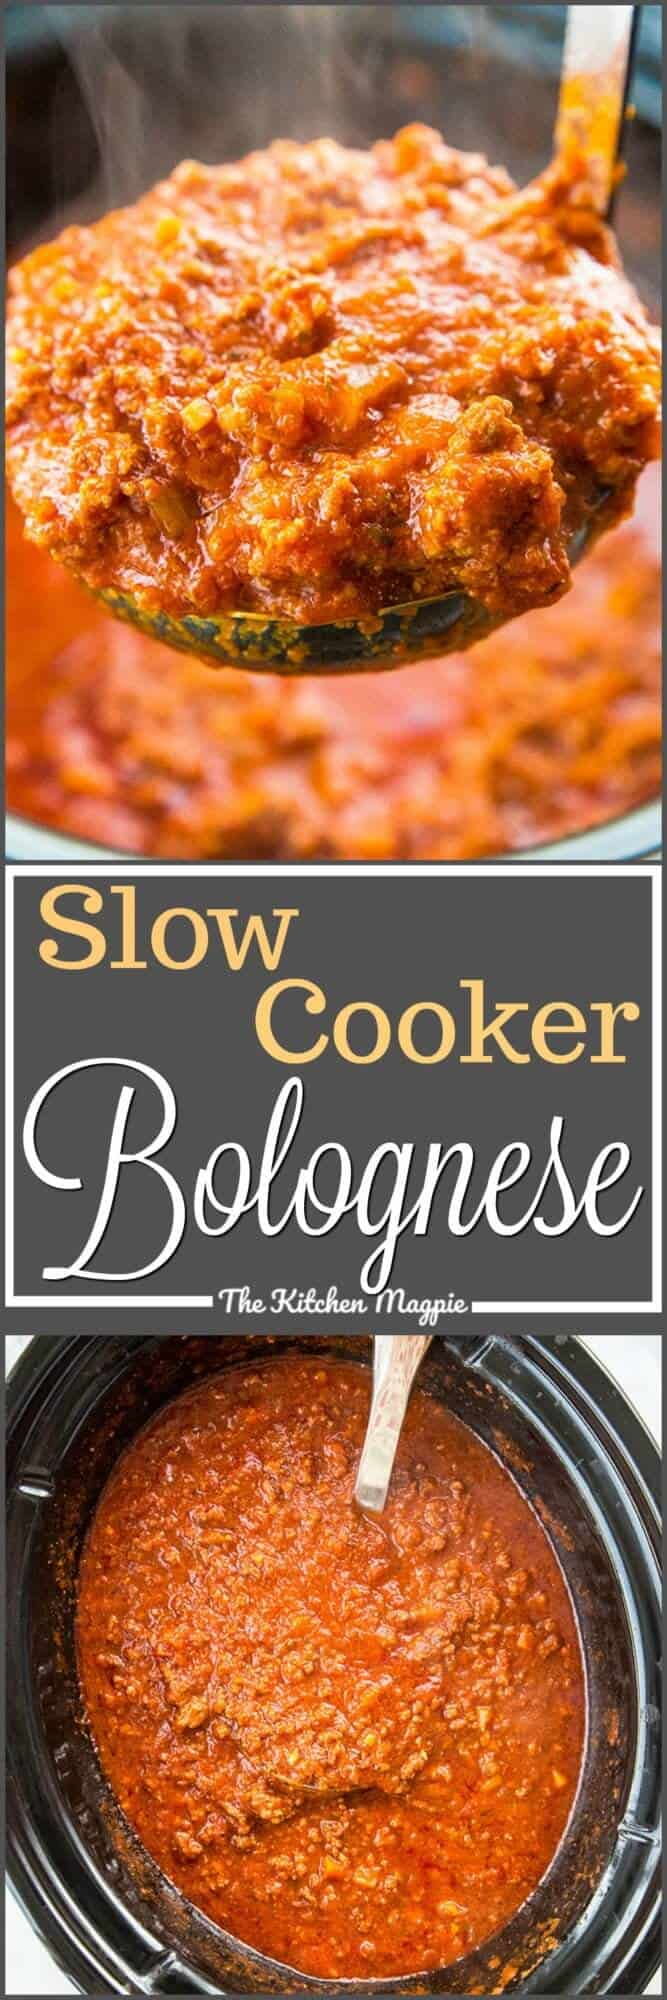 This dreamy slow cooker Bolognese sauce will be a family favourite! It cooks all day long and you end up with a velvety sauce that will change the way you think about sauces! Recipe from @kitchenmagpie